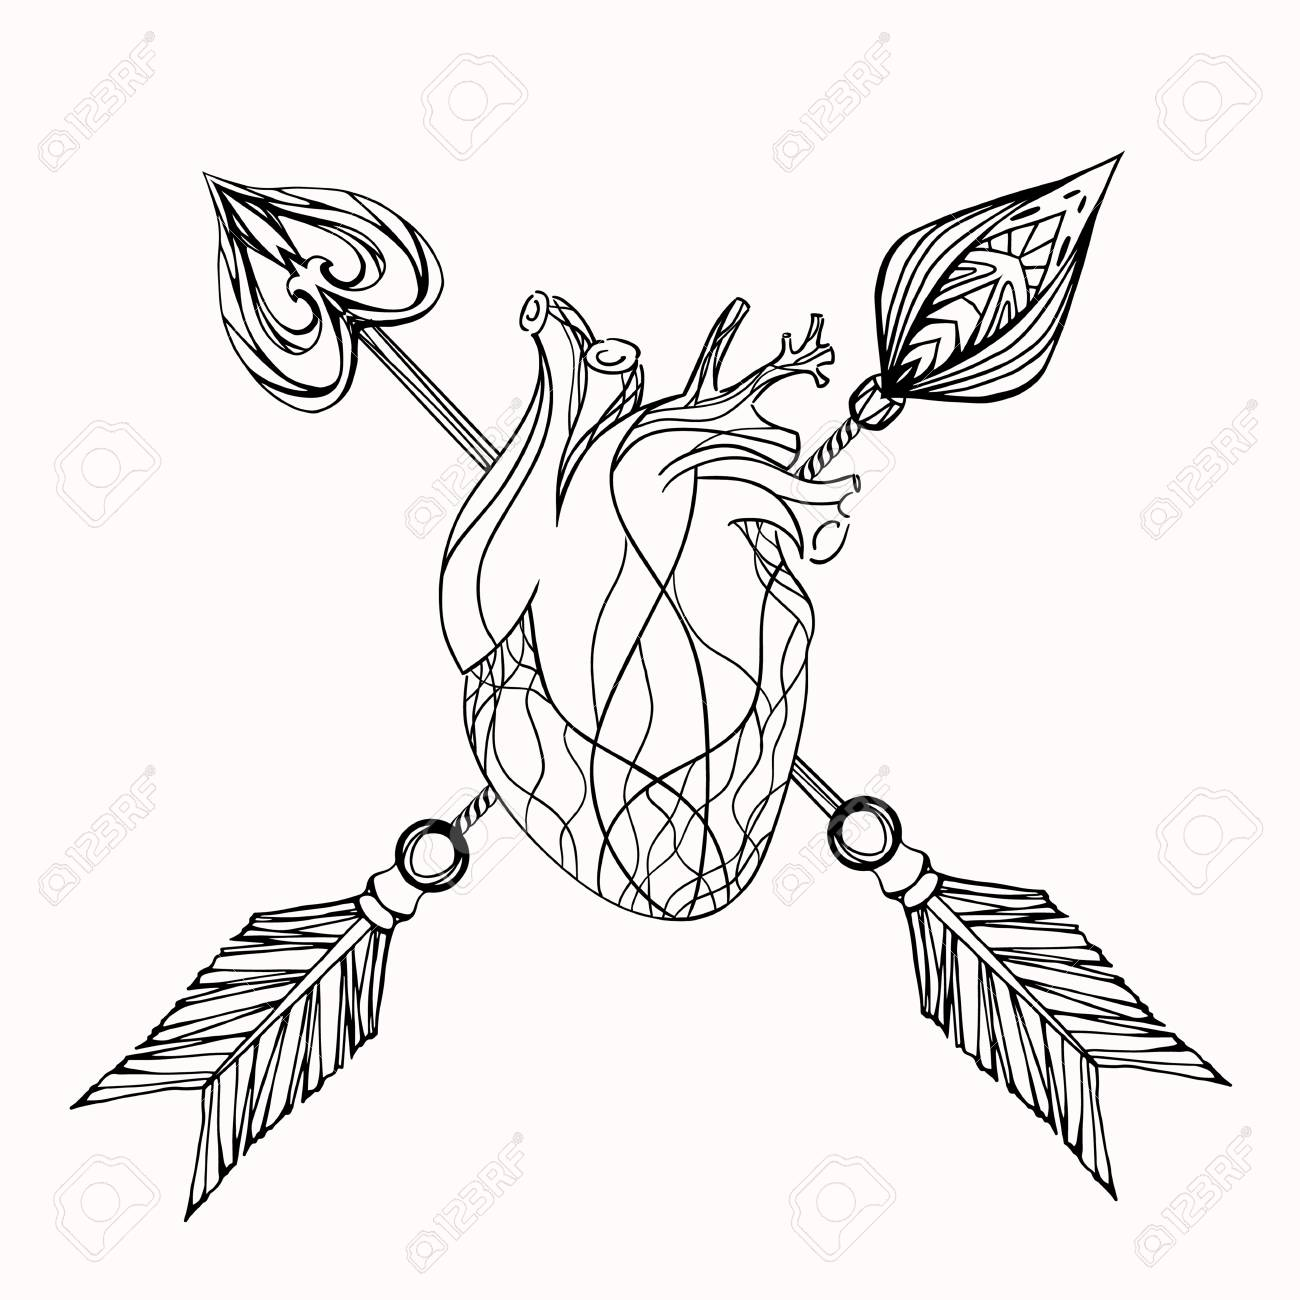 1300x1300 Illustration Of Heart And Arrow. Vector Element For Tattoo Sketch